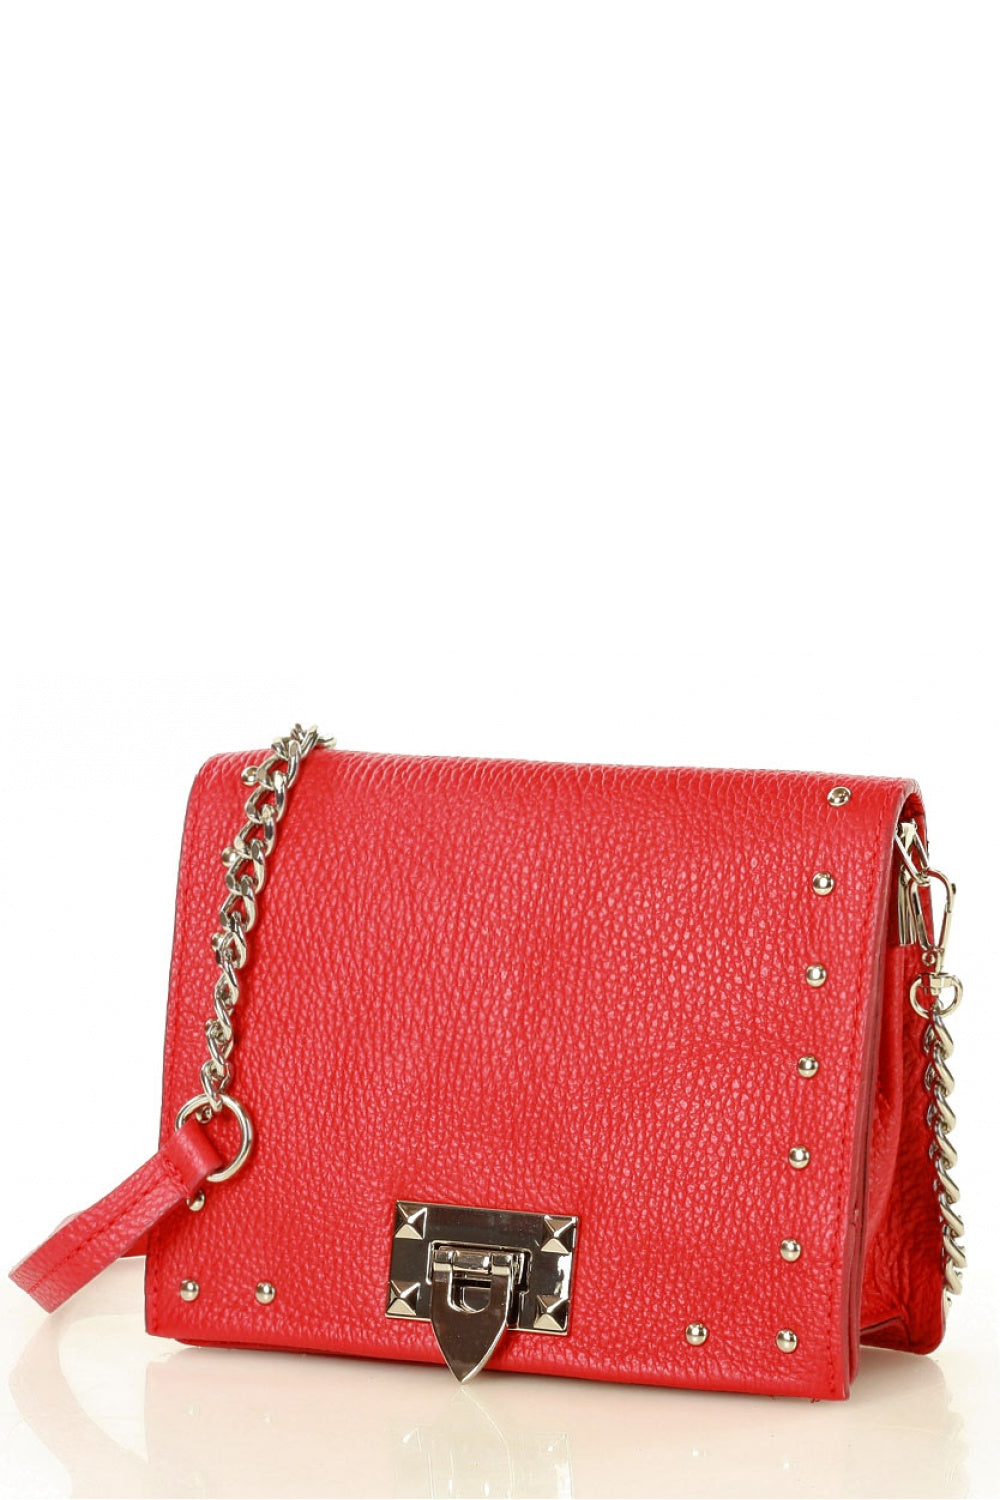 Rocking Purse 141629 Mazzini